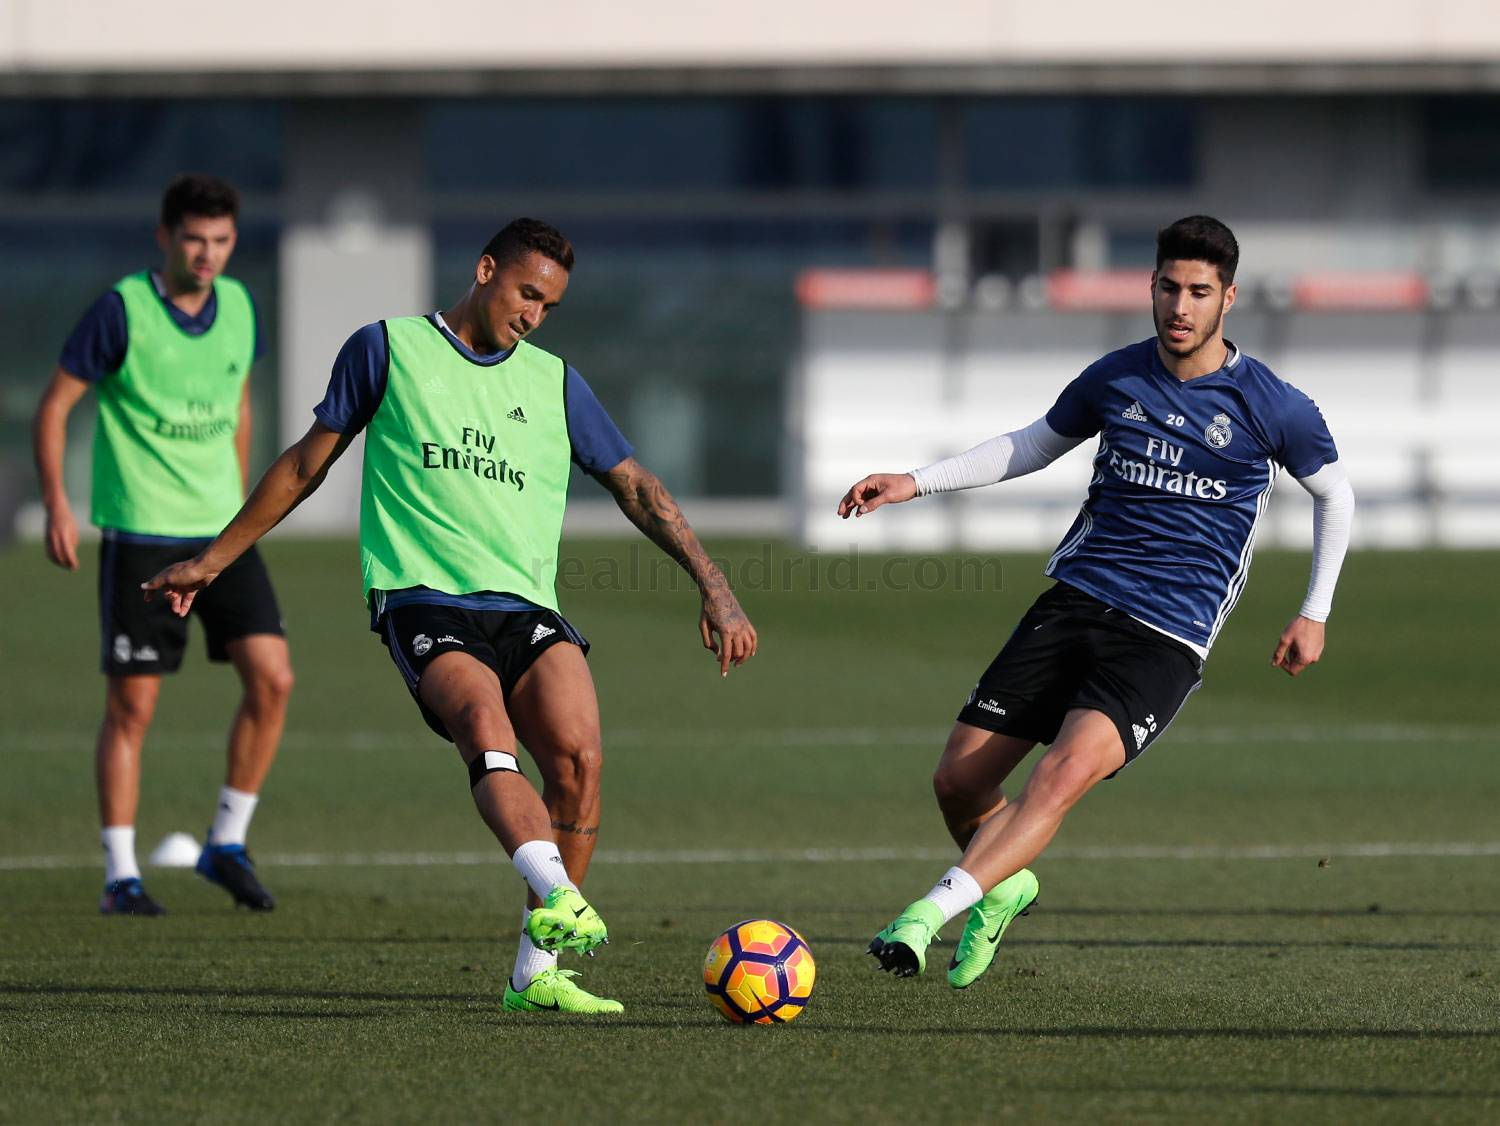 Real Madrid - Entrenamiento del Real Madrid - 31-01-2017